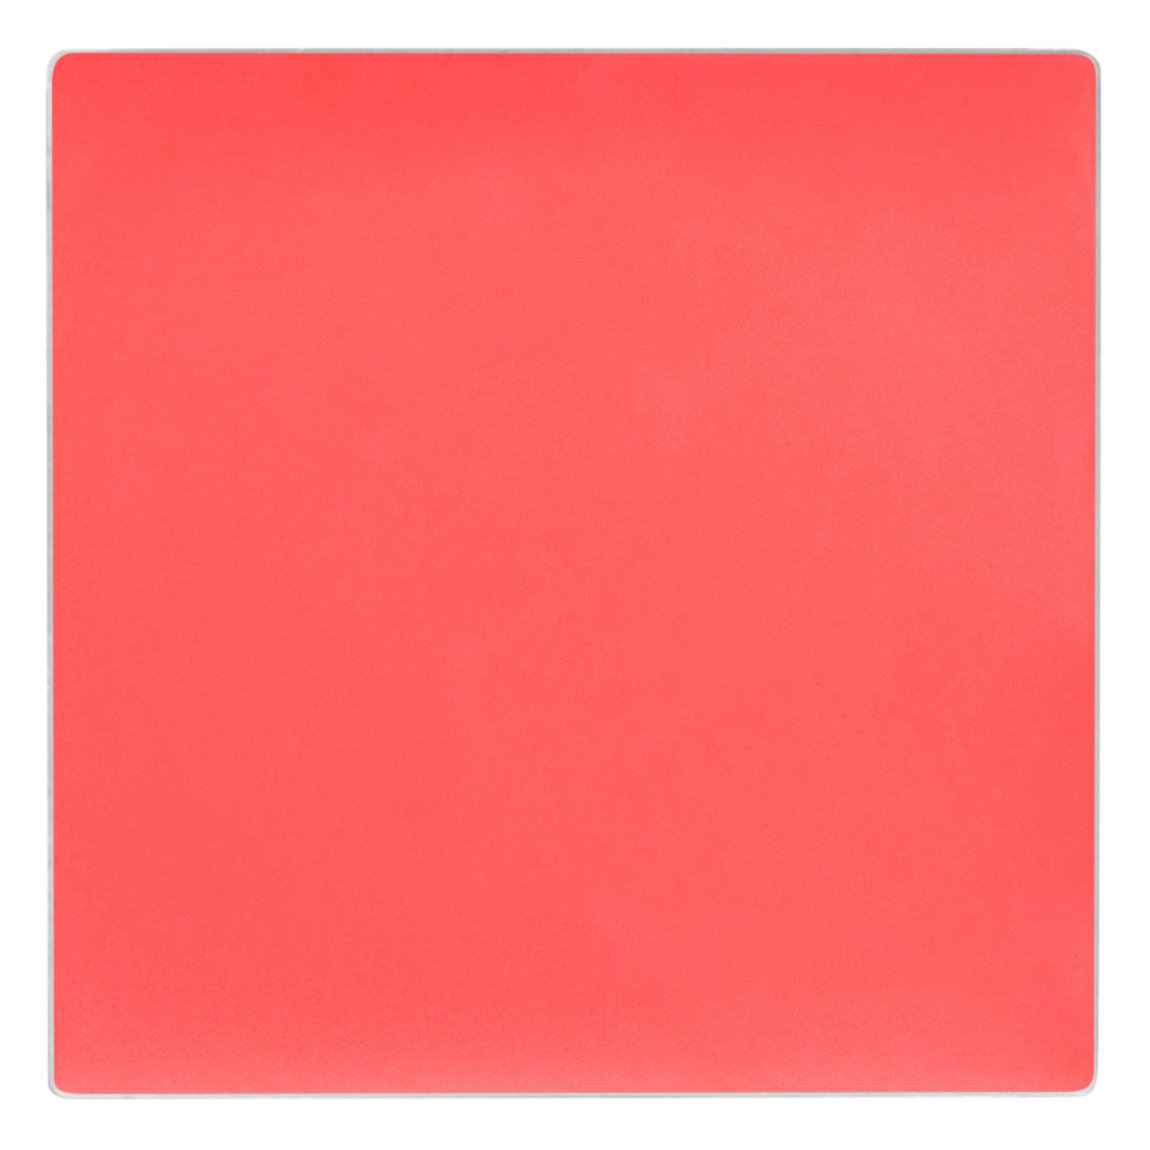 Kjaer Weis Cream Blush Refill Above and Beyond alternative view 1 - product swatch.